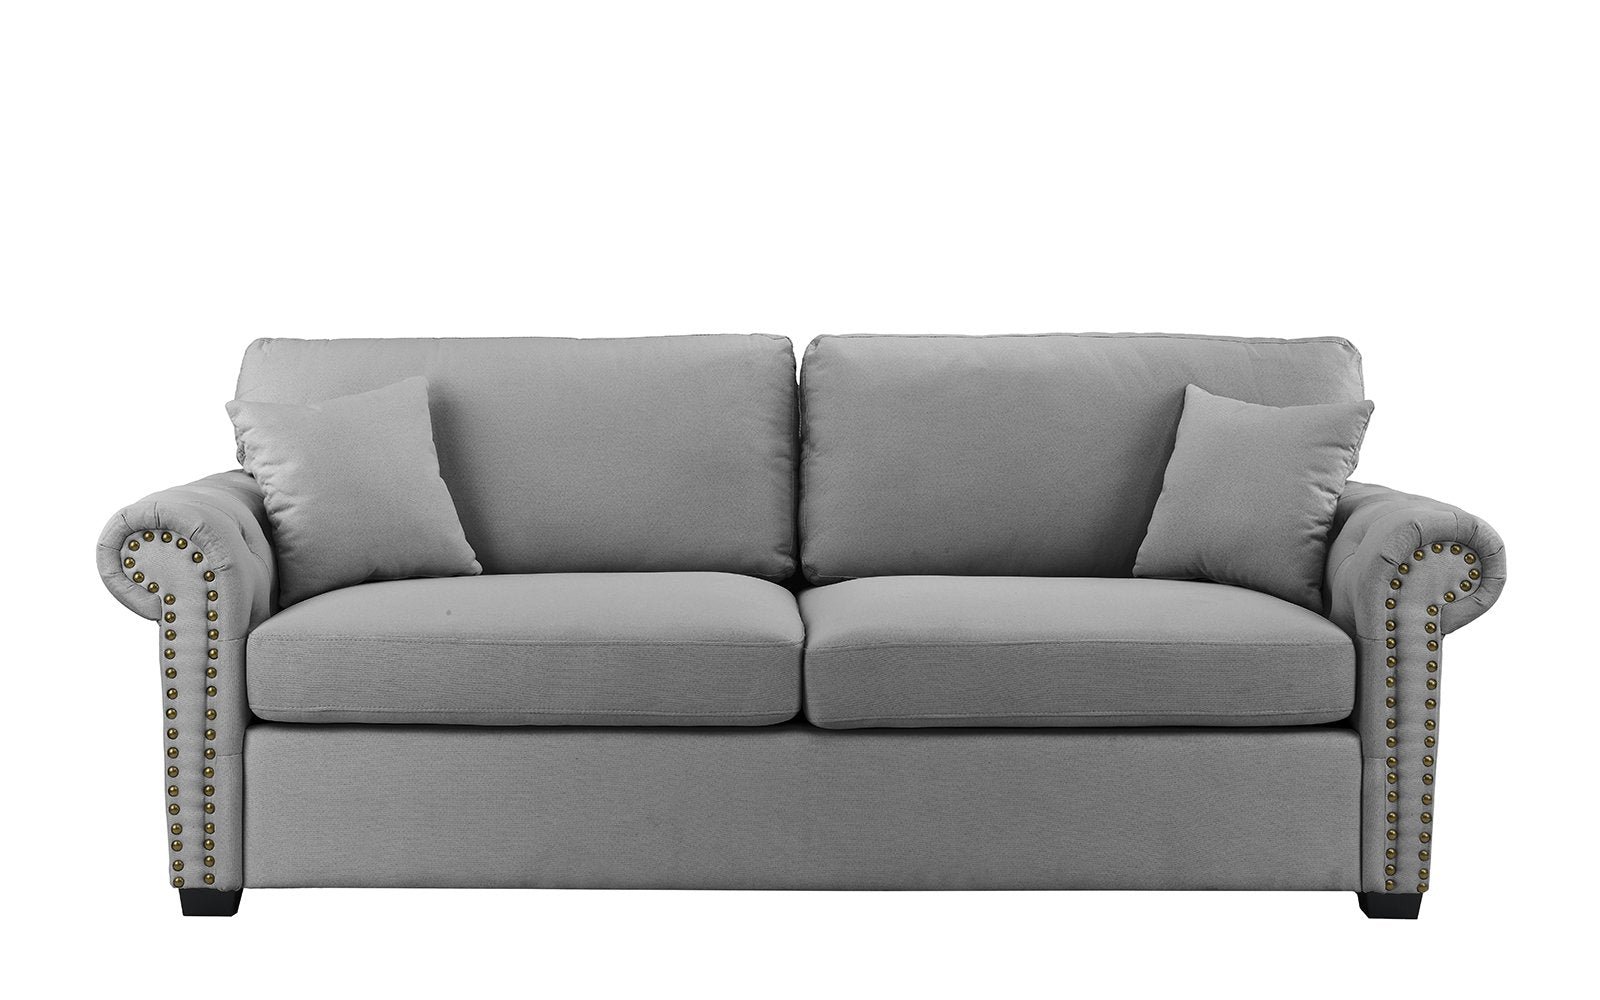 Executive Linen Loveseat Trim Image